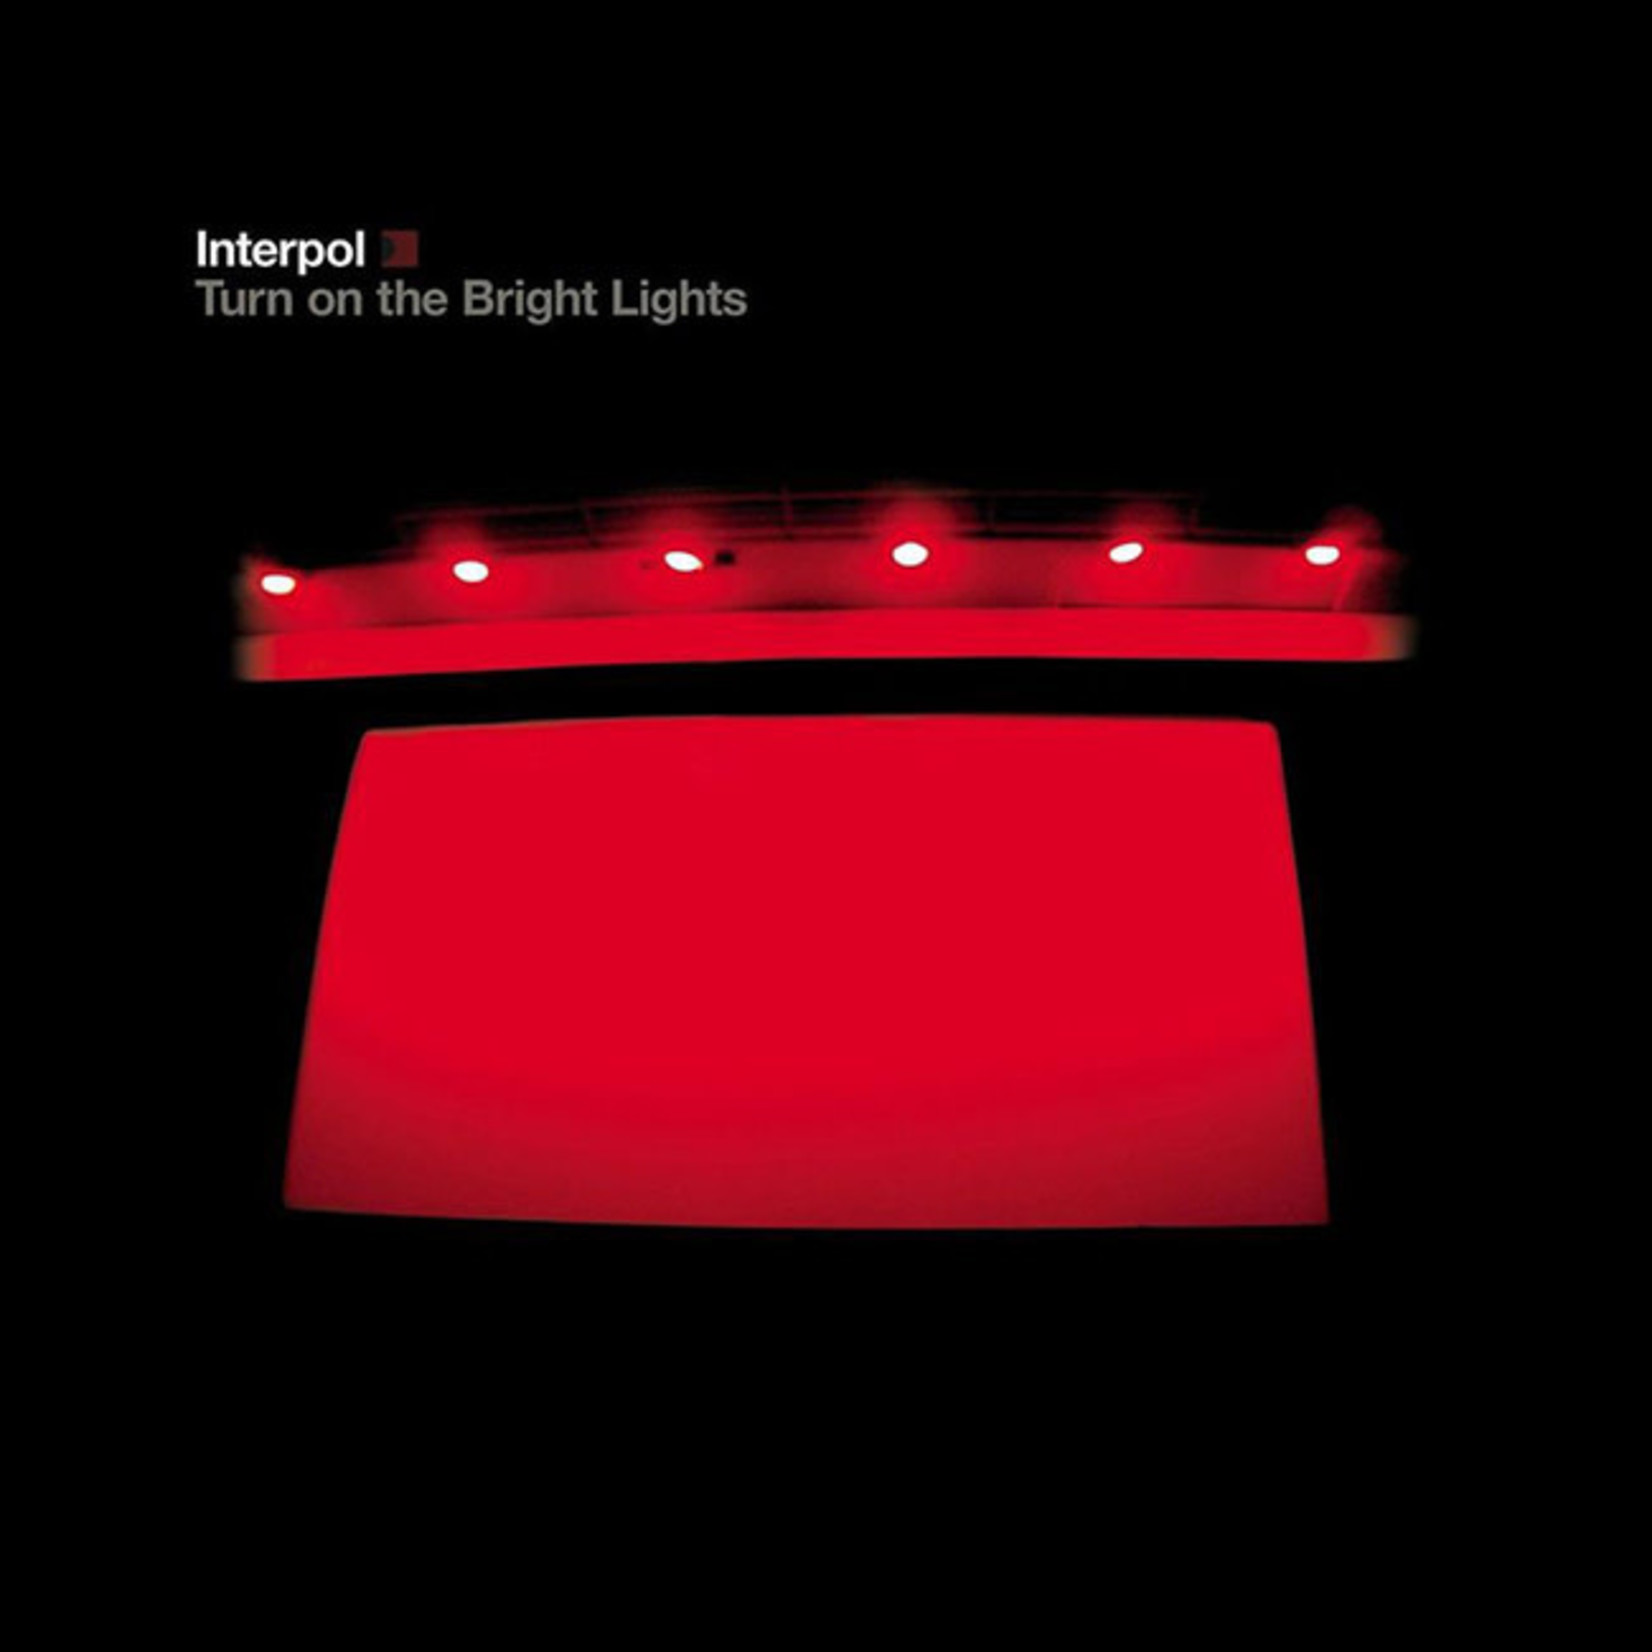 [New] Interpol: Turn On The Bright Lights